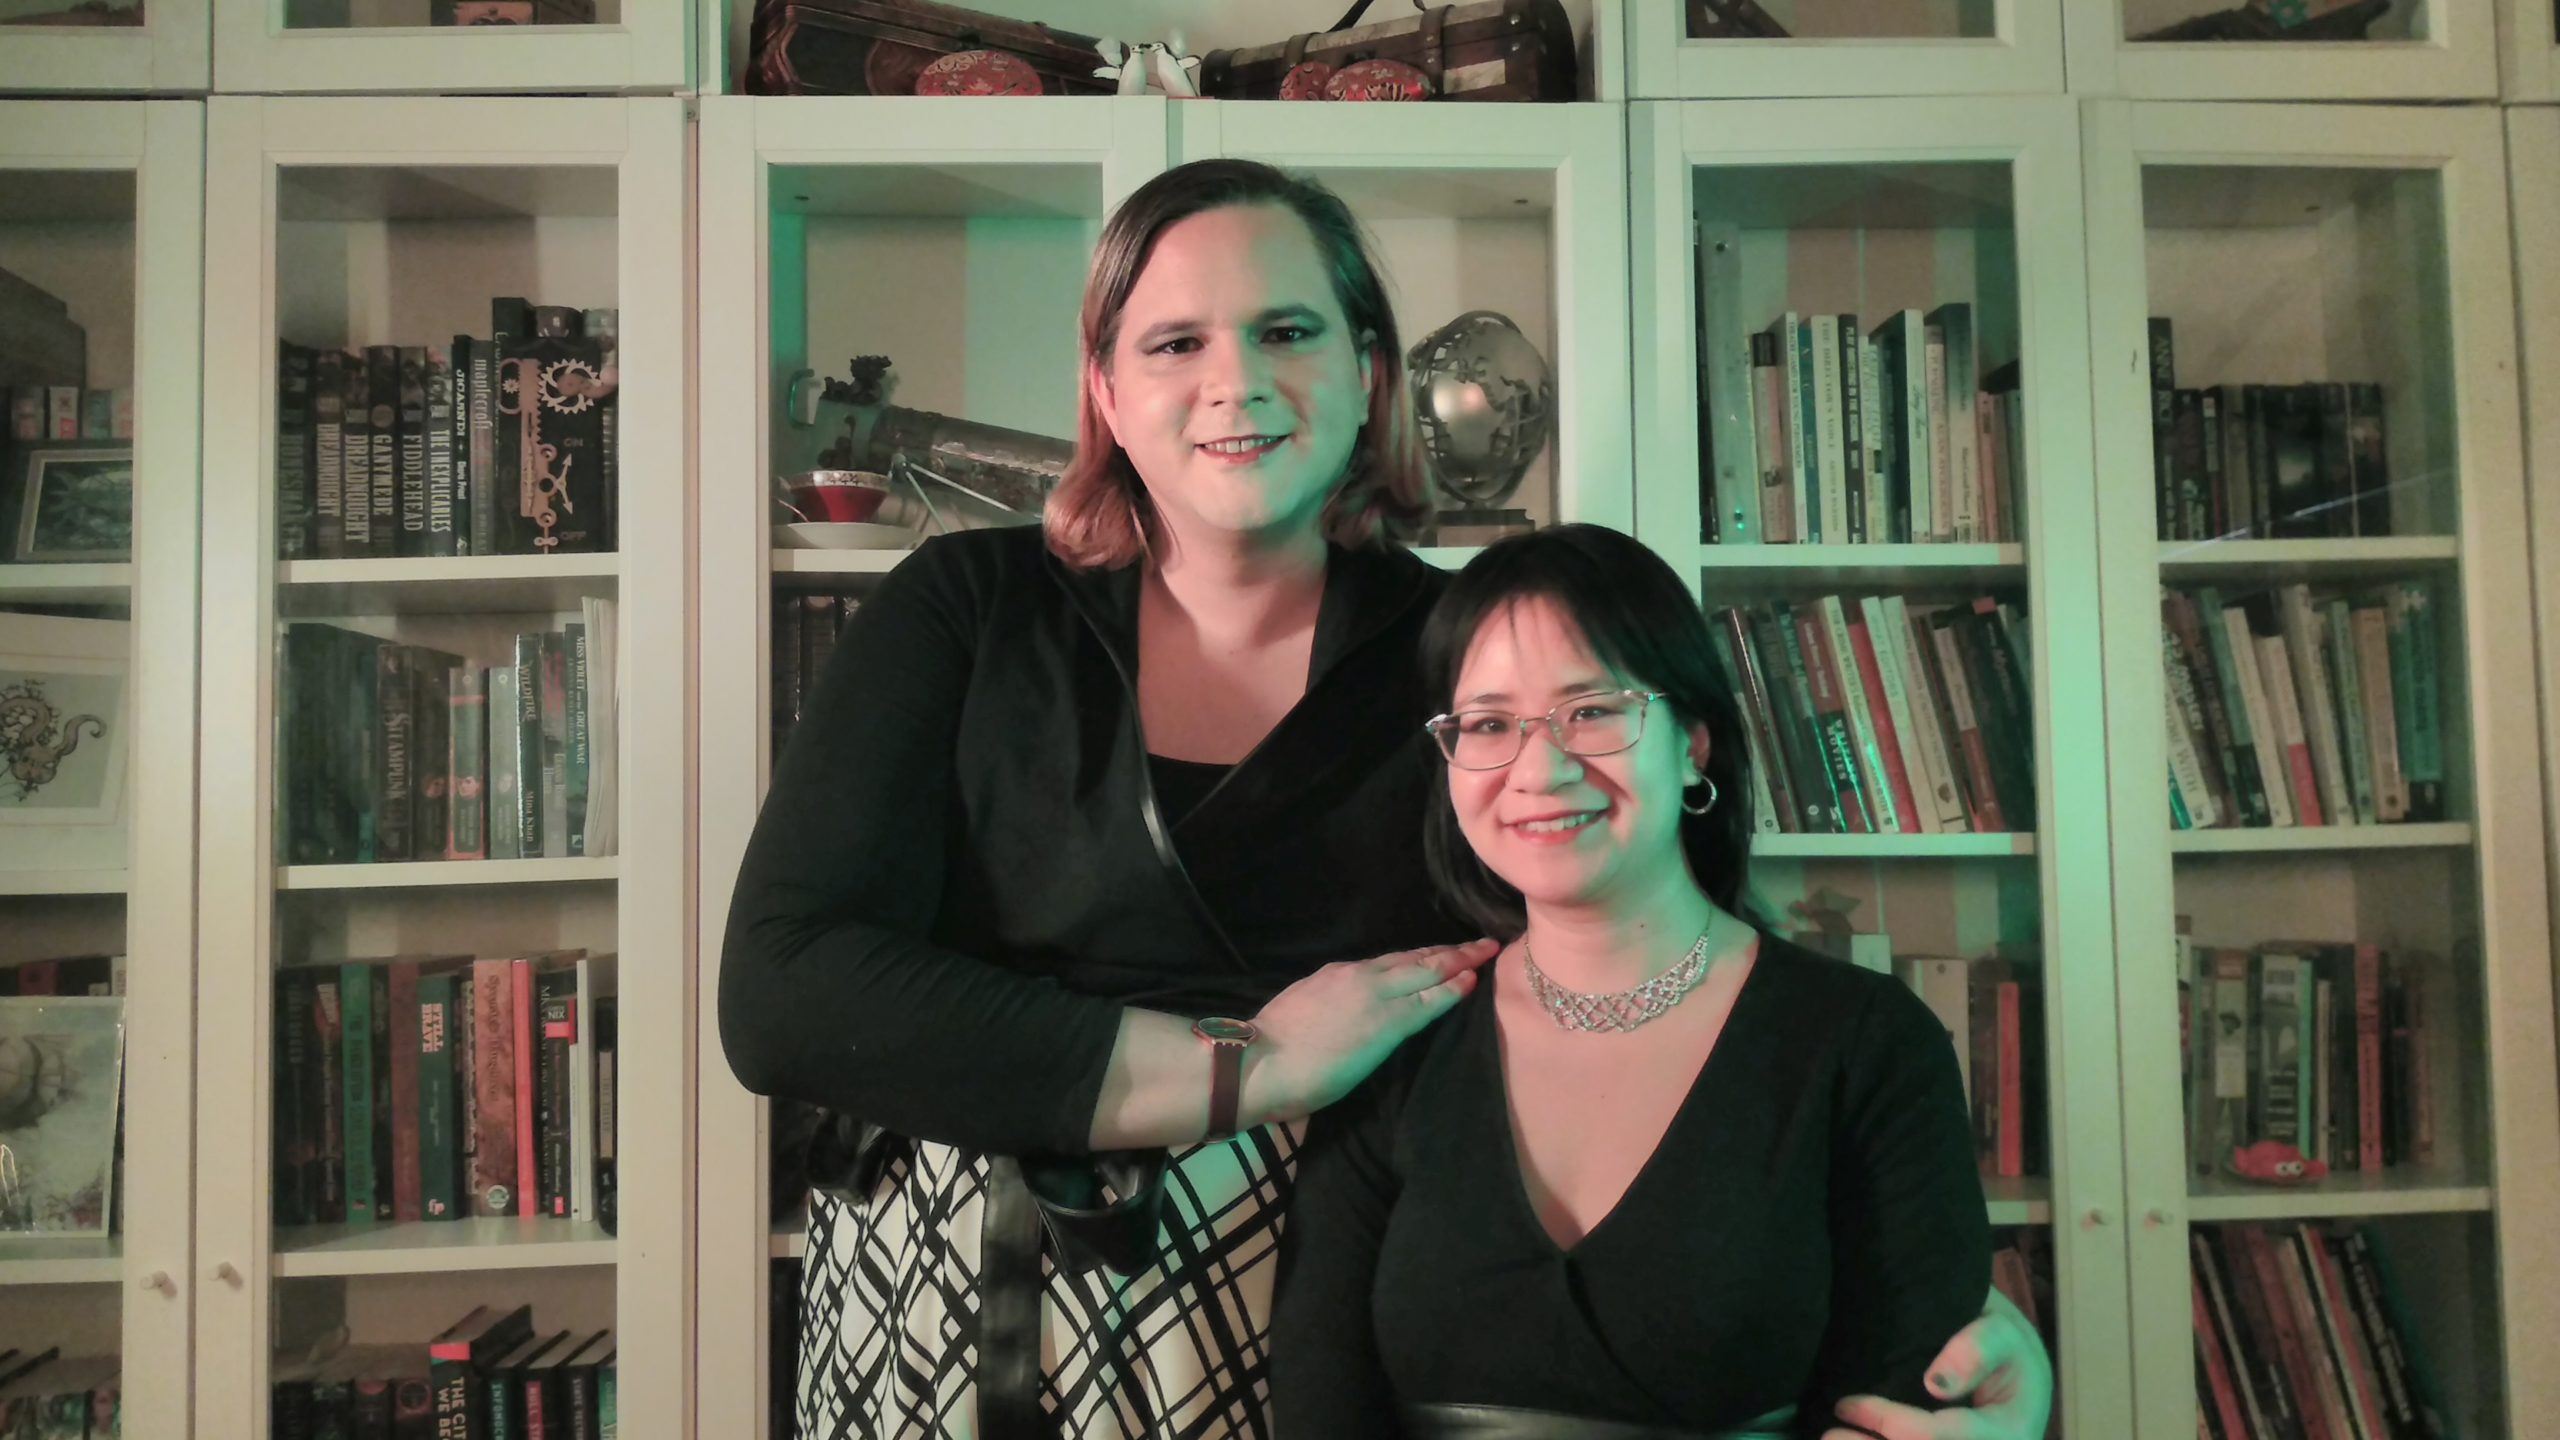 Diana M. Pho and Ashley Rogers in front of a bookcase smiling at the camera